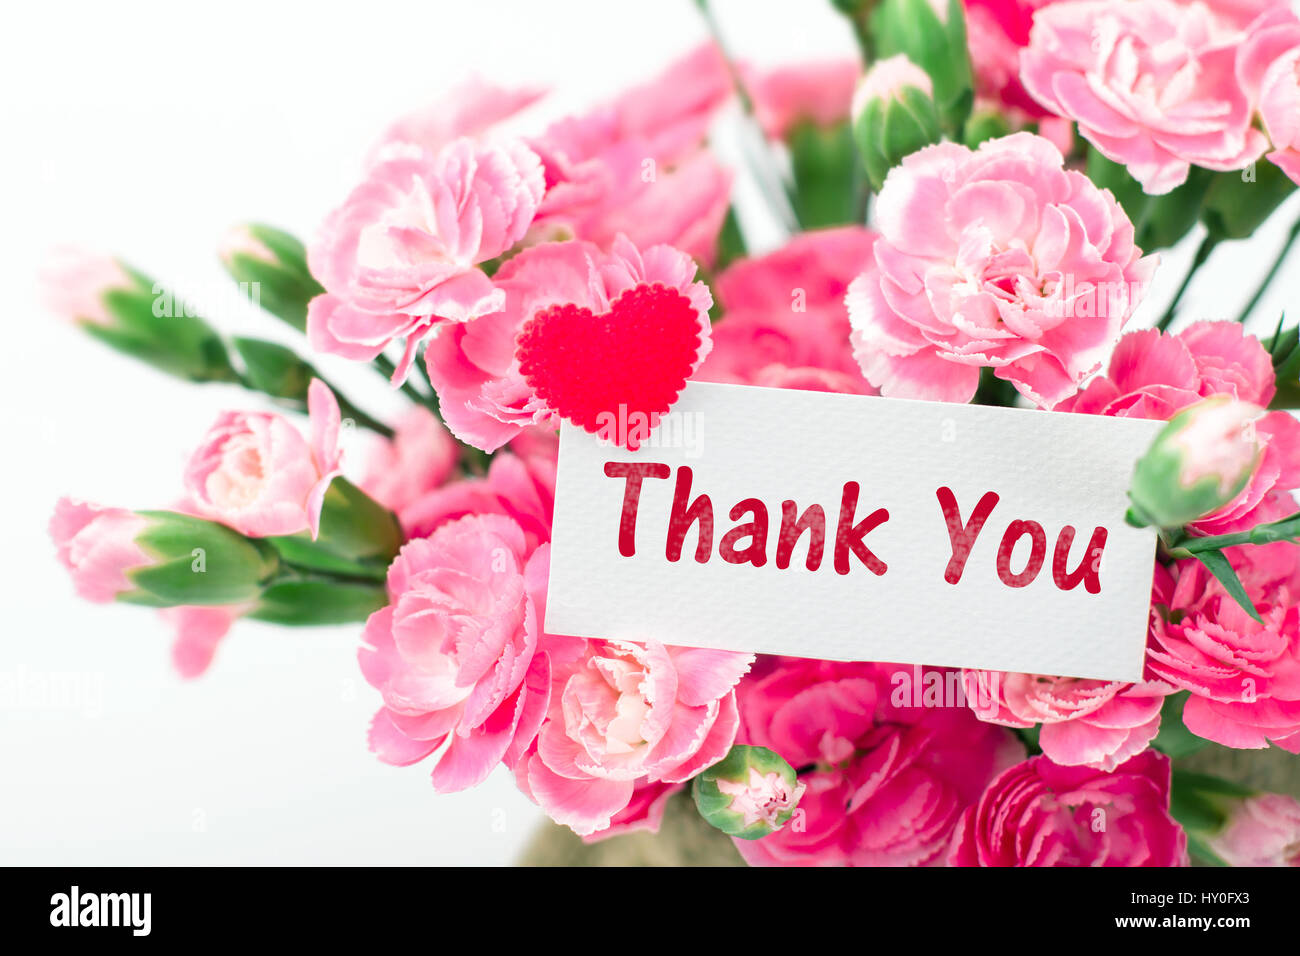 Thank You Card And Beautiful Blooming Of The Pink Carnation Flowers